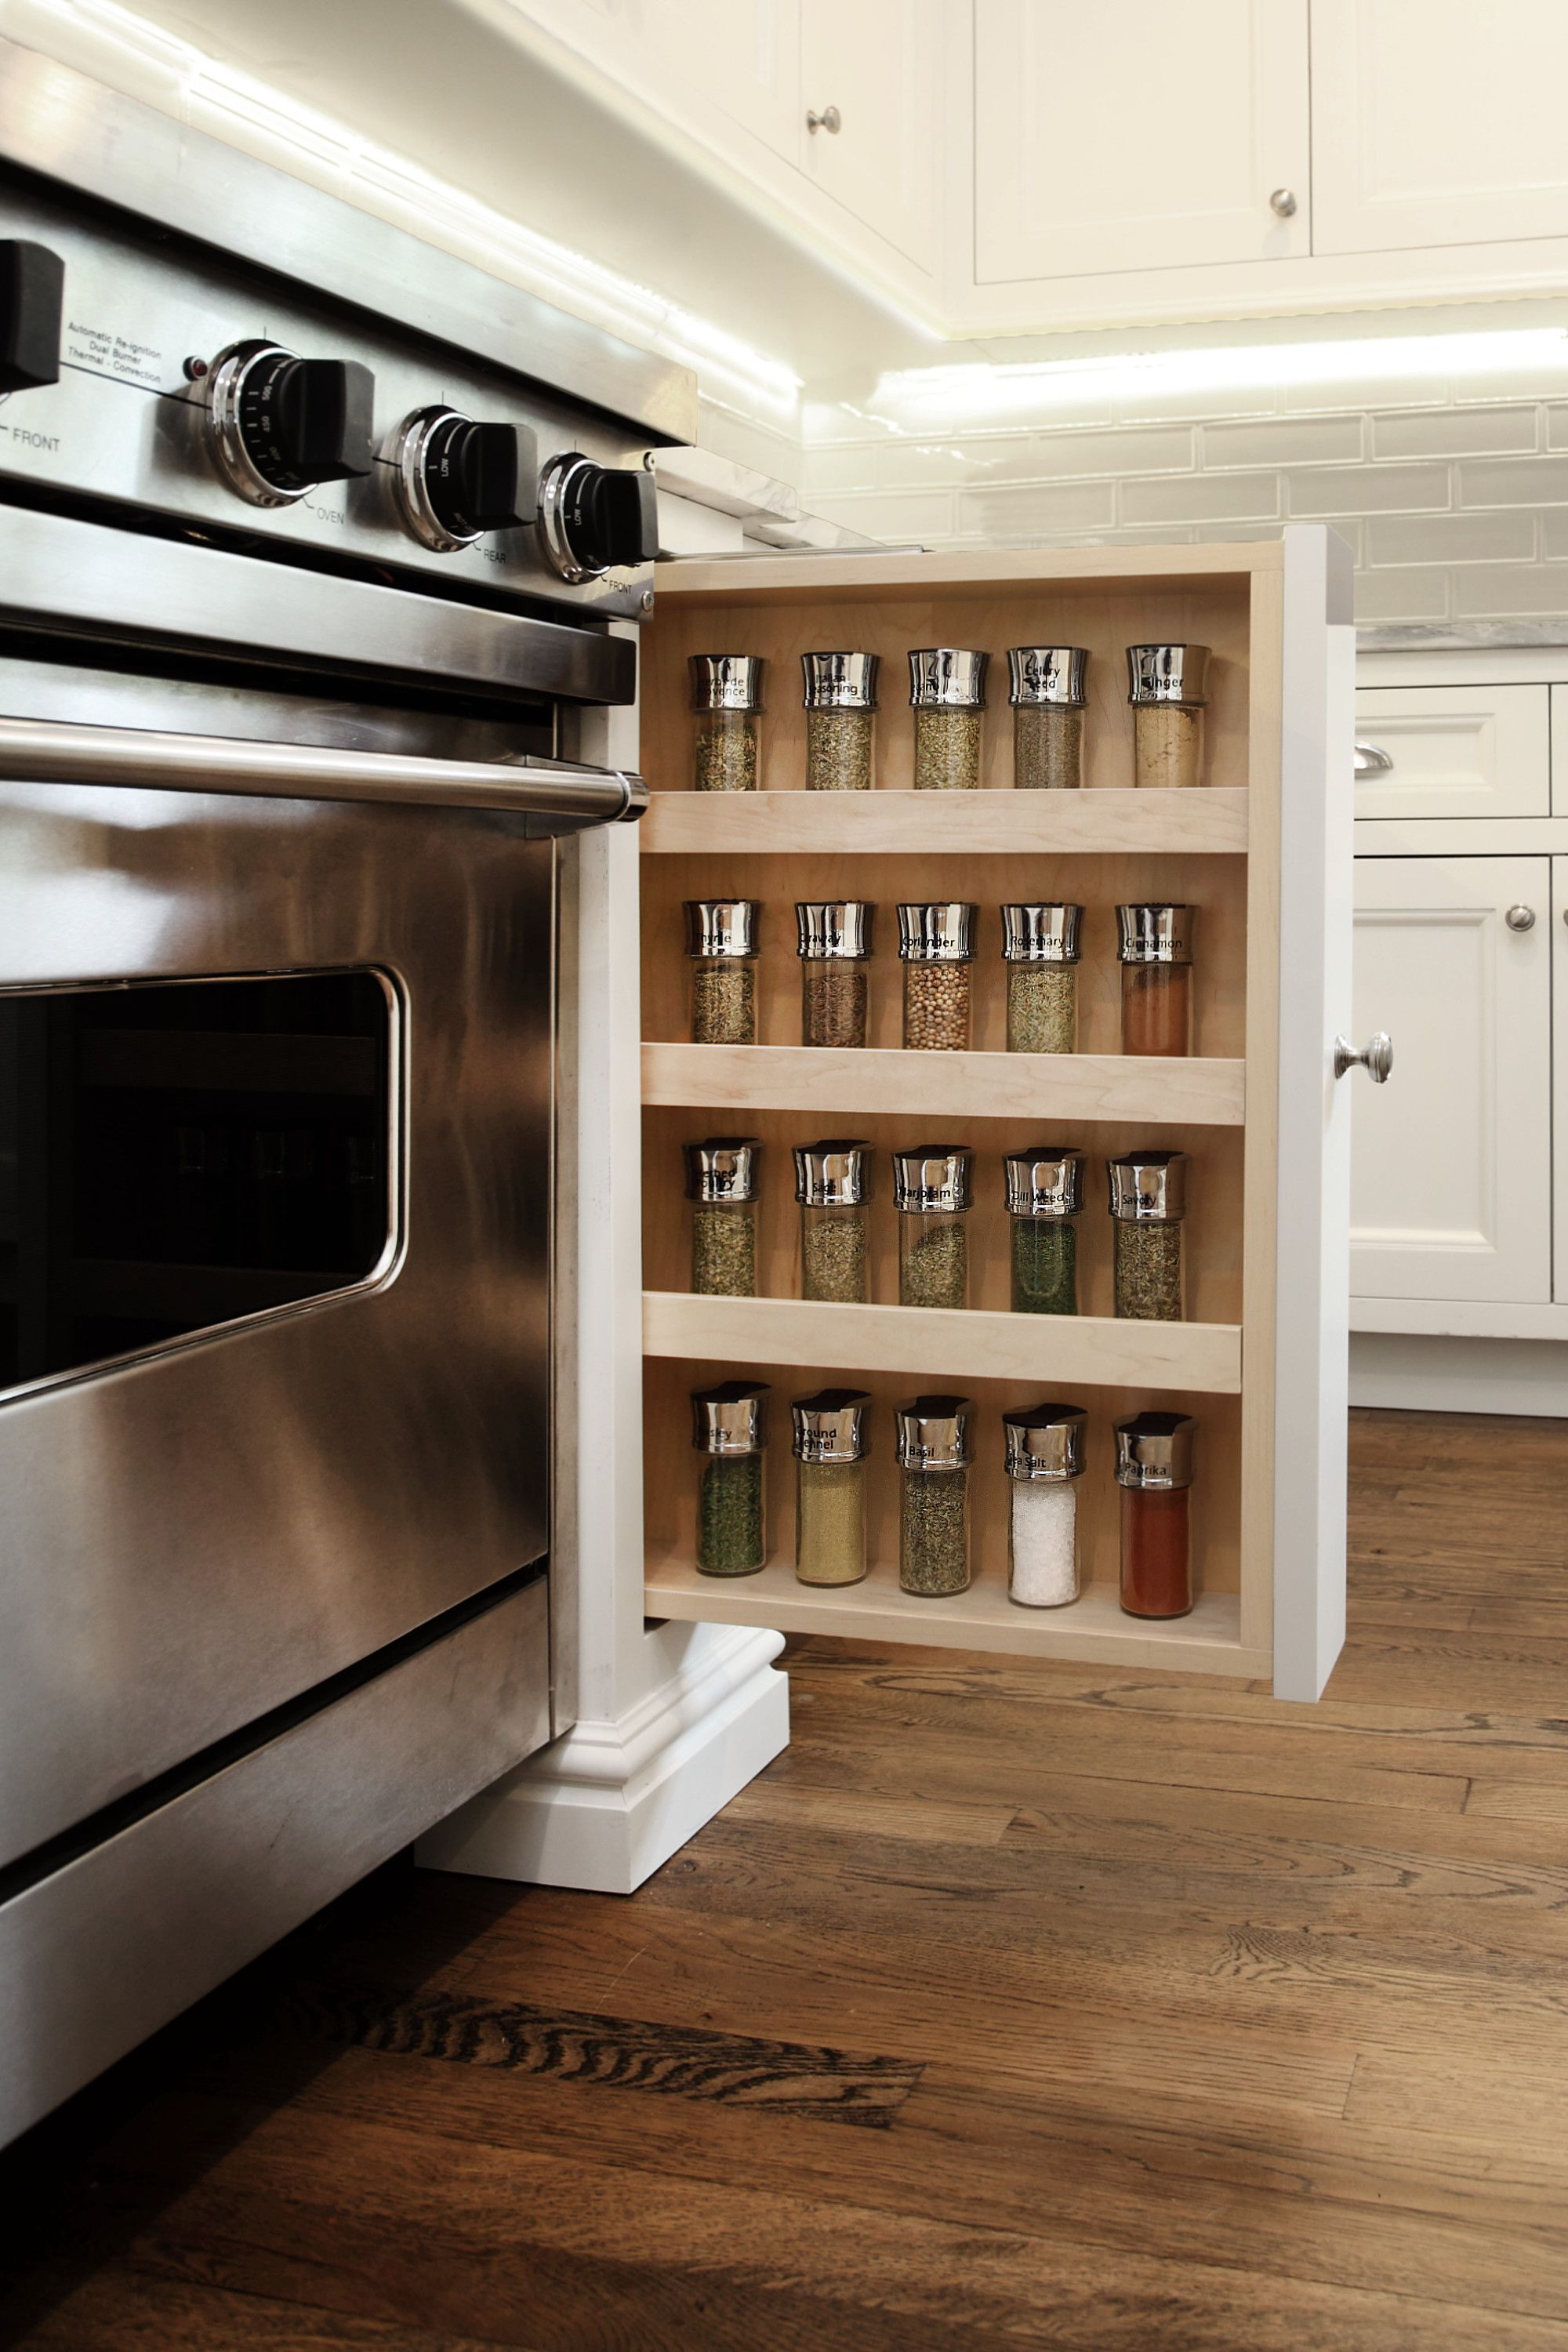 Built In Dedicated Spice Rack That Retracts Into Cabinet For Tidy